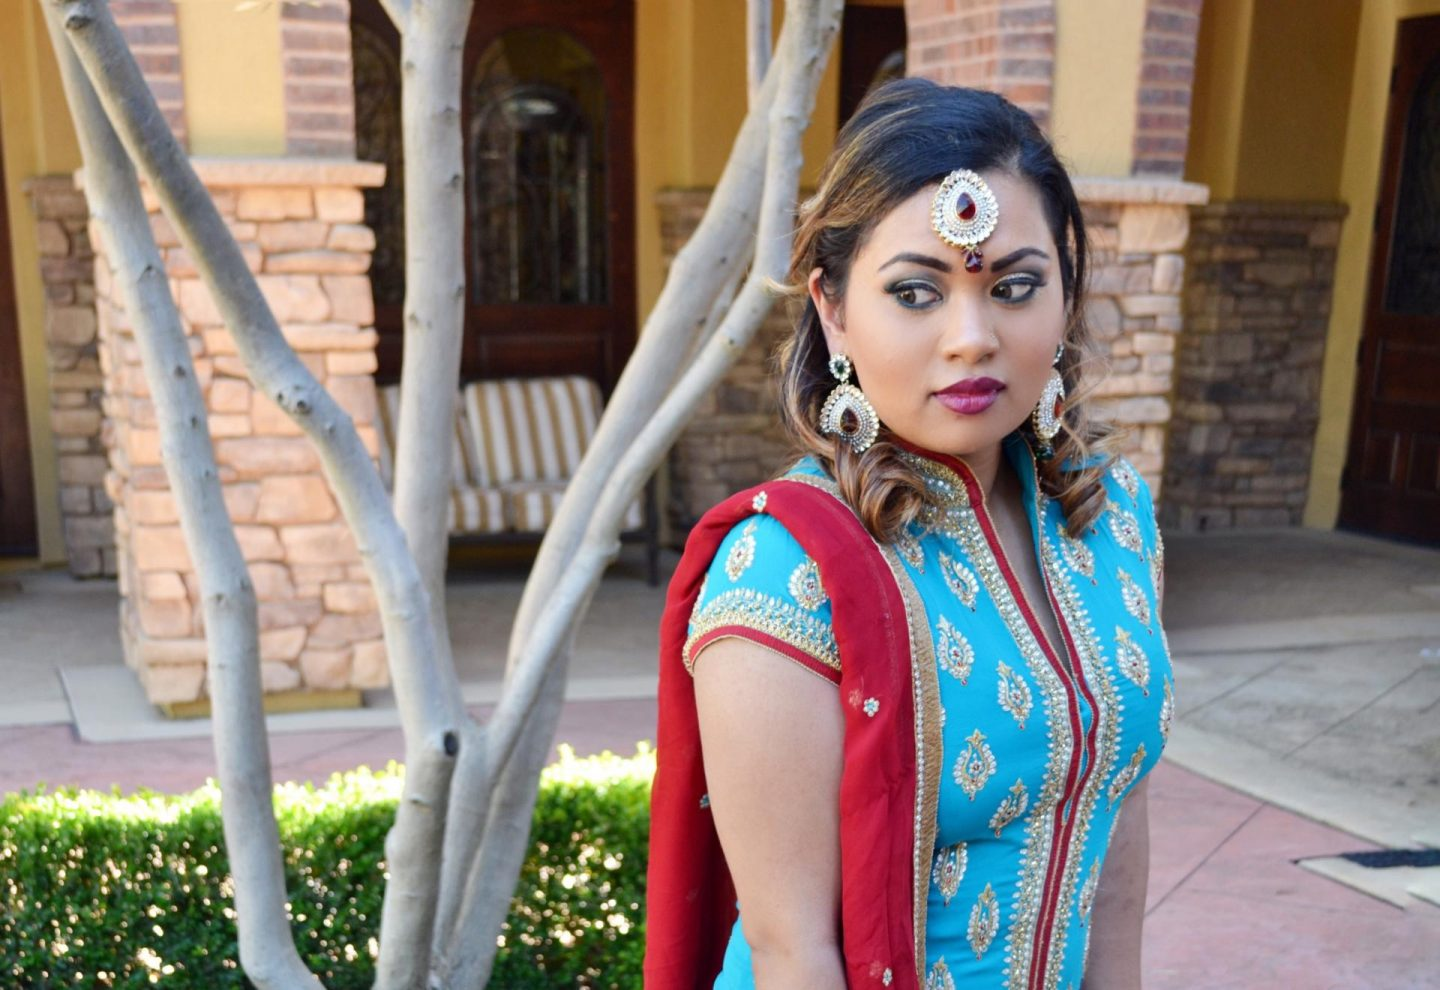 Indian Wedding Day 2 – Sangeet Night Outfit